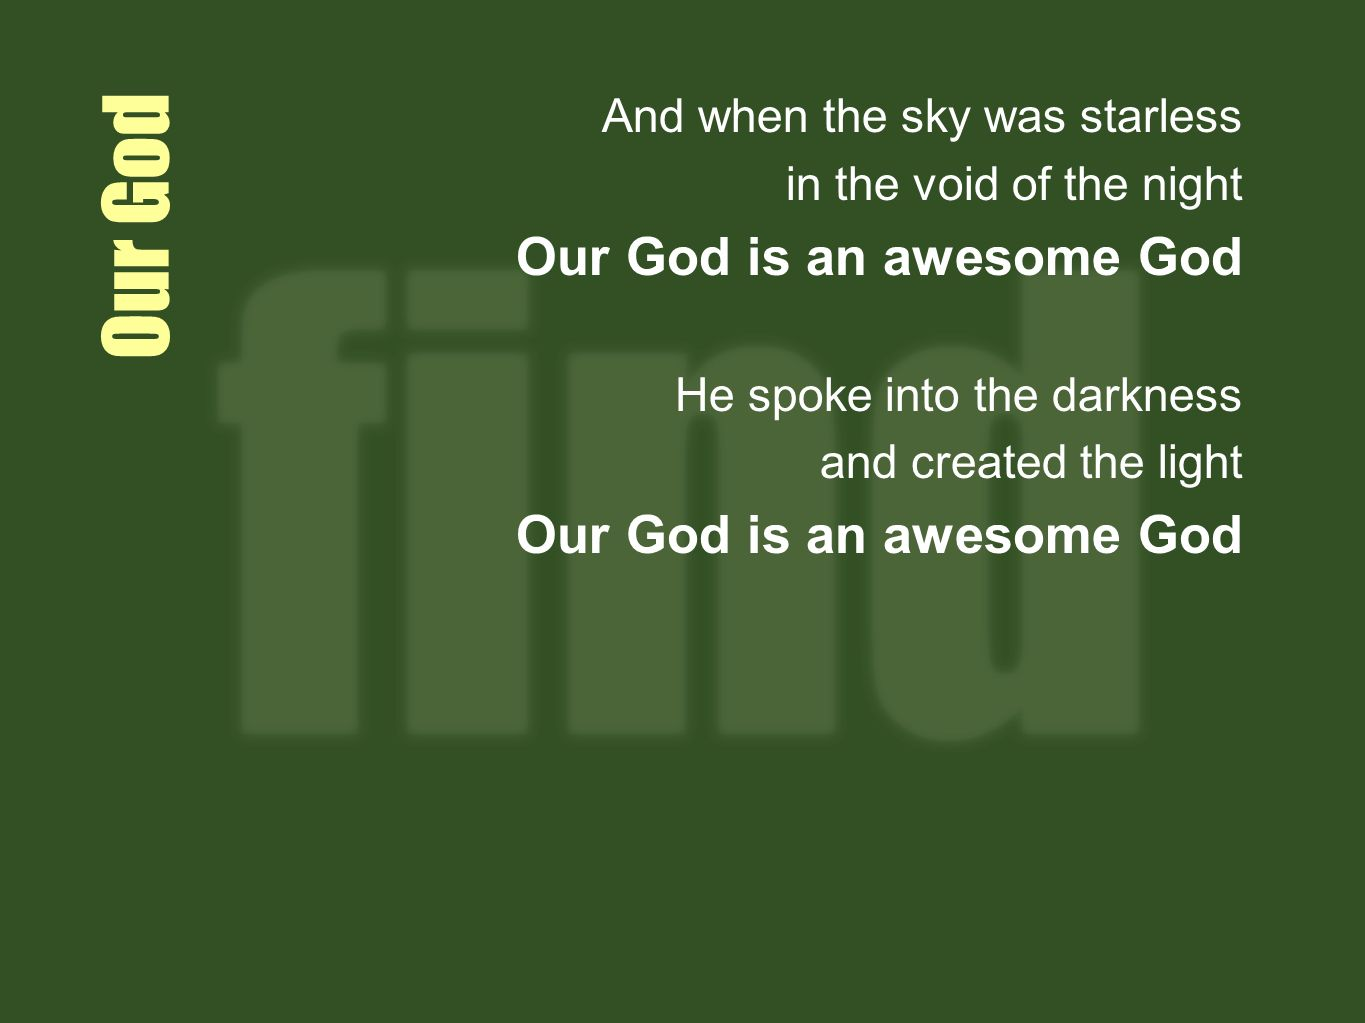 Our God And when the sky was starless in the void of the night Our God is an awesome God He spoke into the darkness and created the light Our God is an awesome God